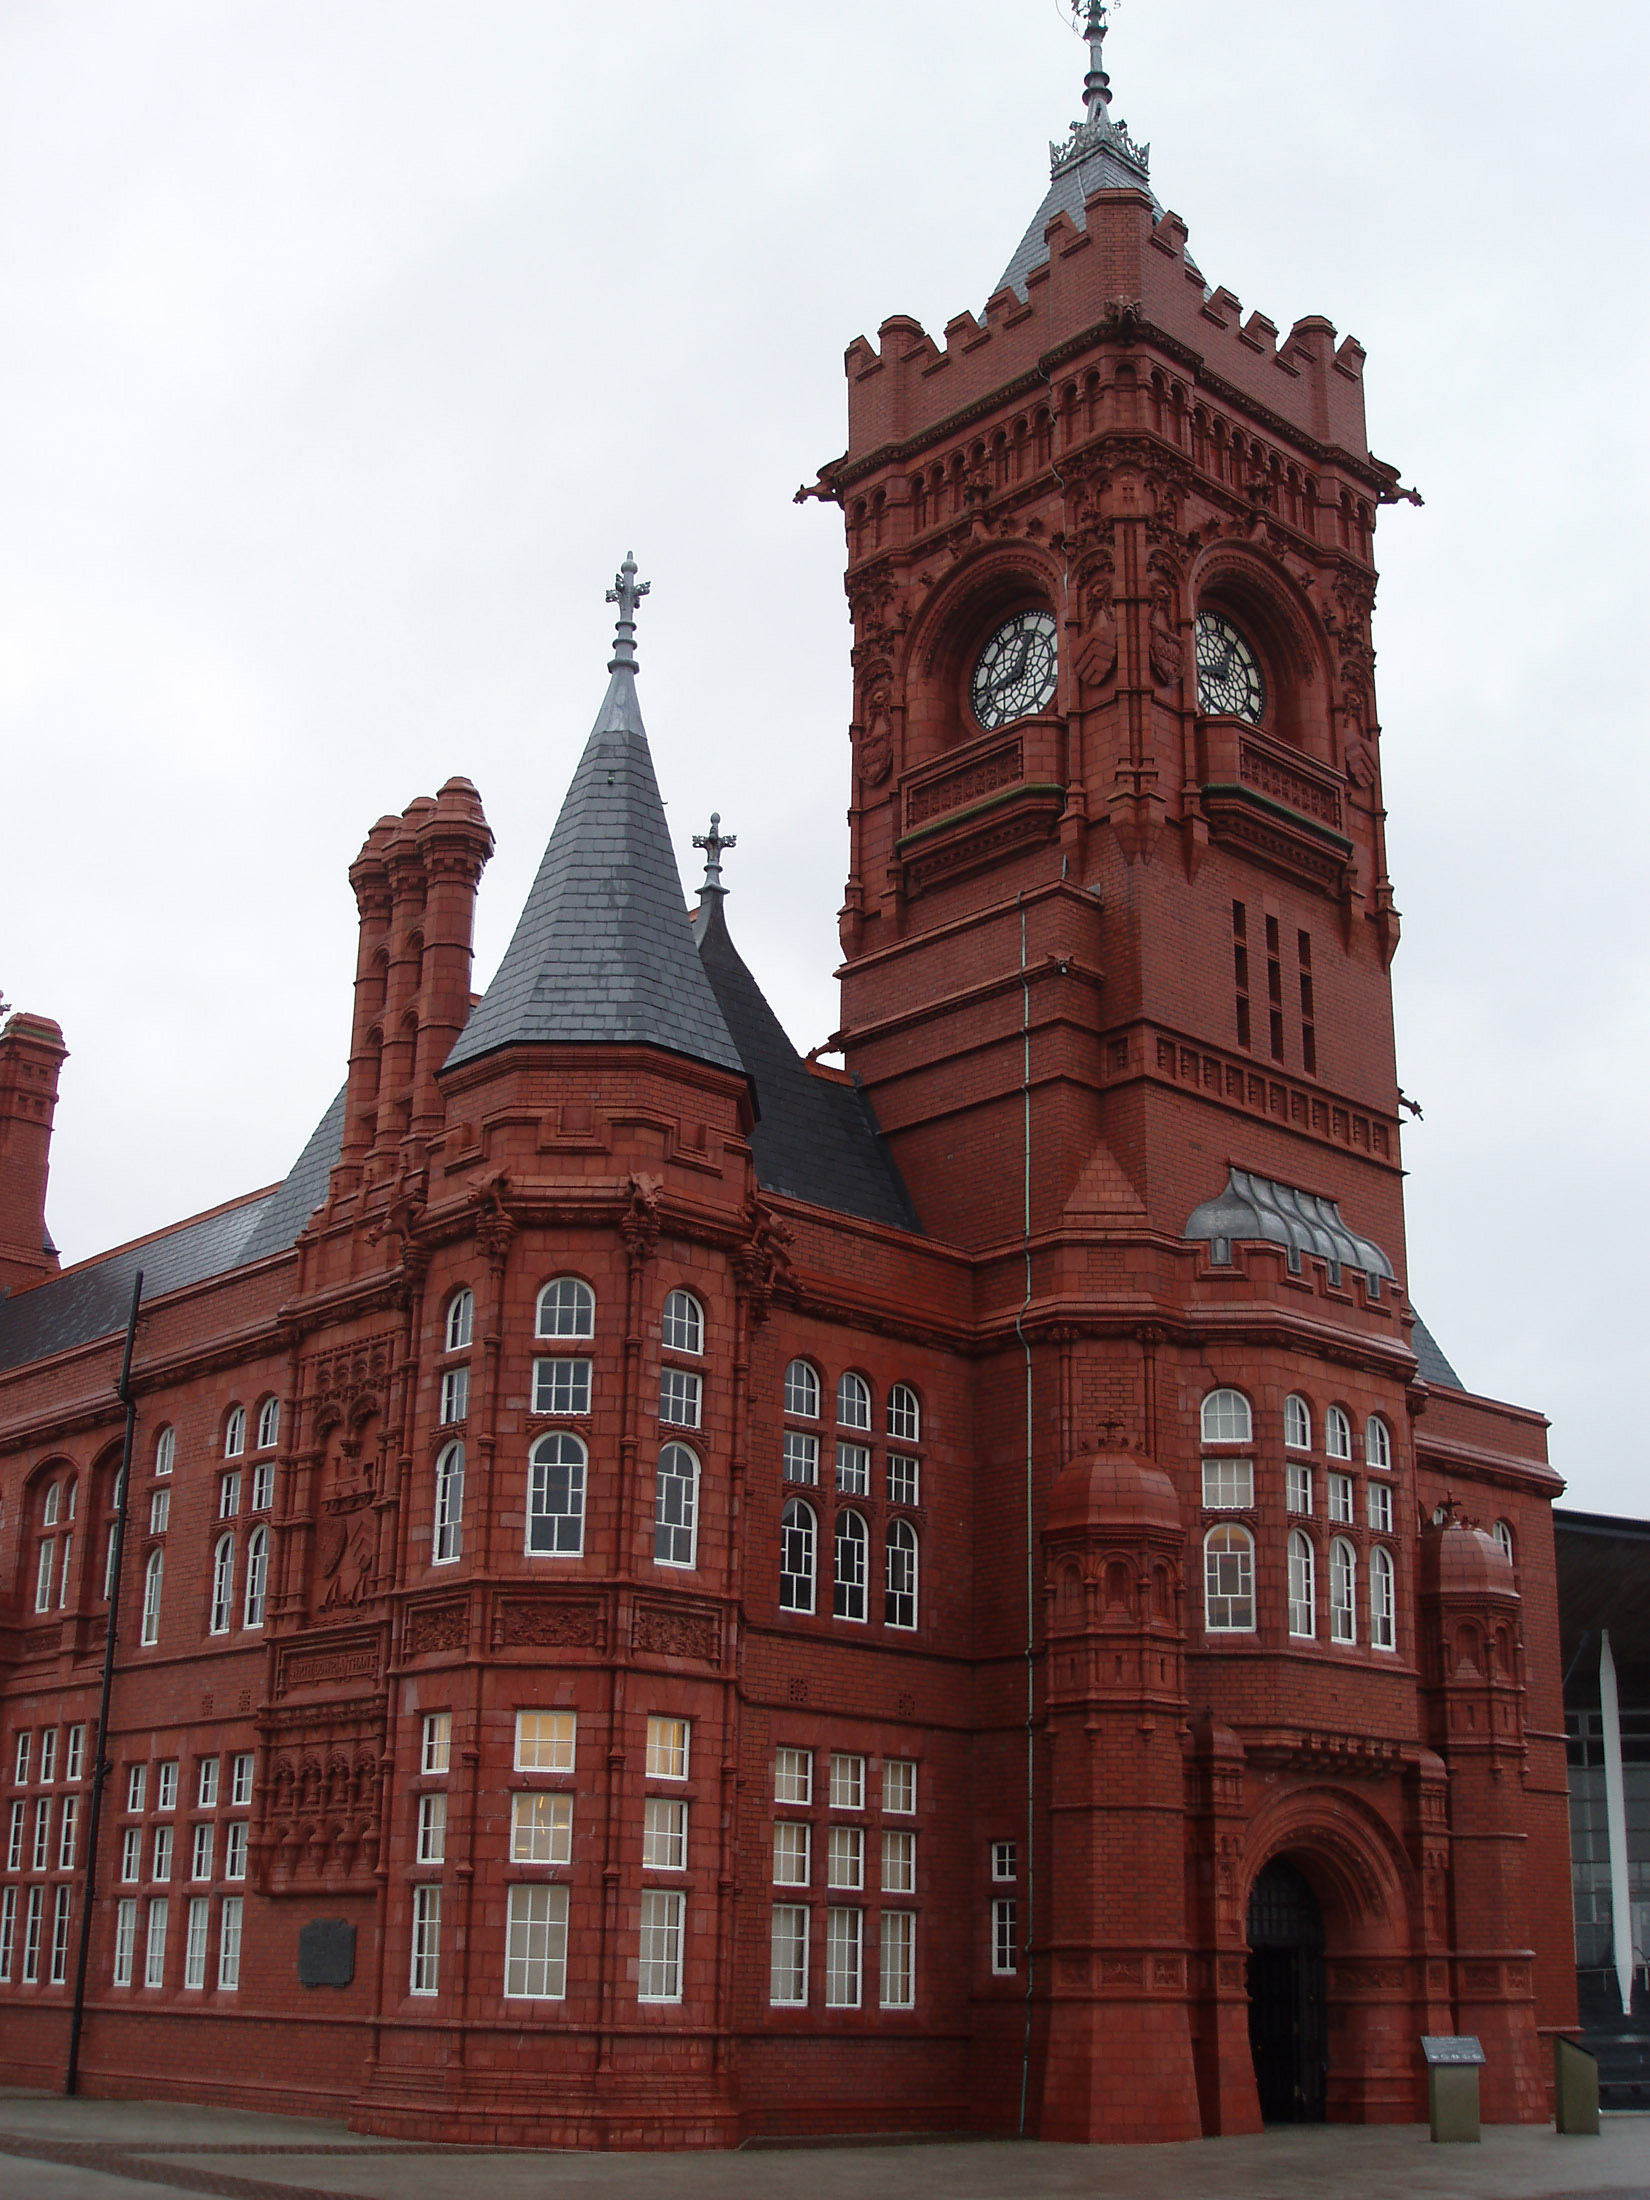 Architectural Pierhead Building - Famous Landmark in Cardiff Bay, Wales. The clock on the building is unofficially known as the Baby Big Ben or the Big Ben of Wales.